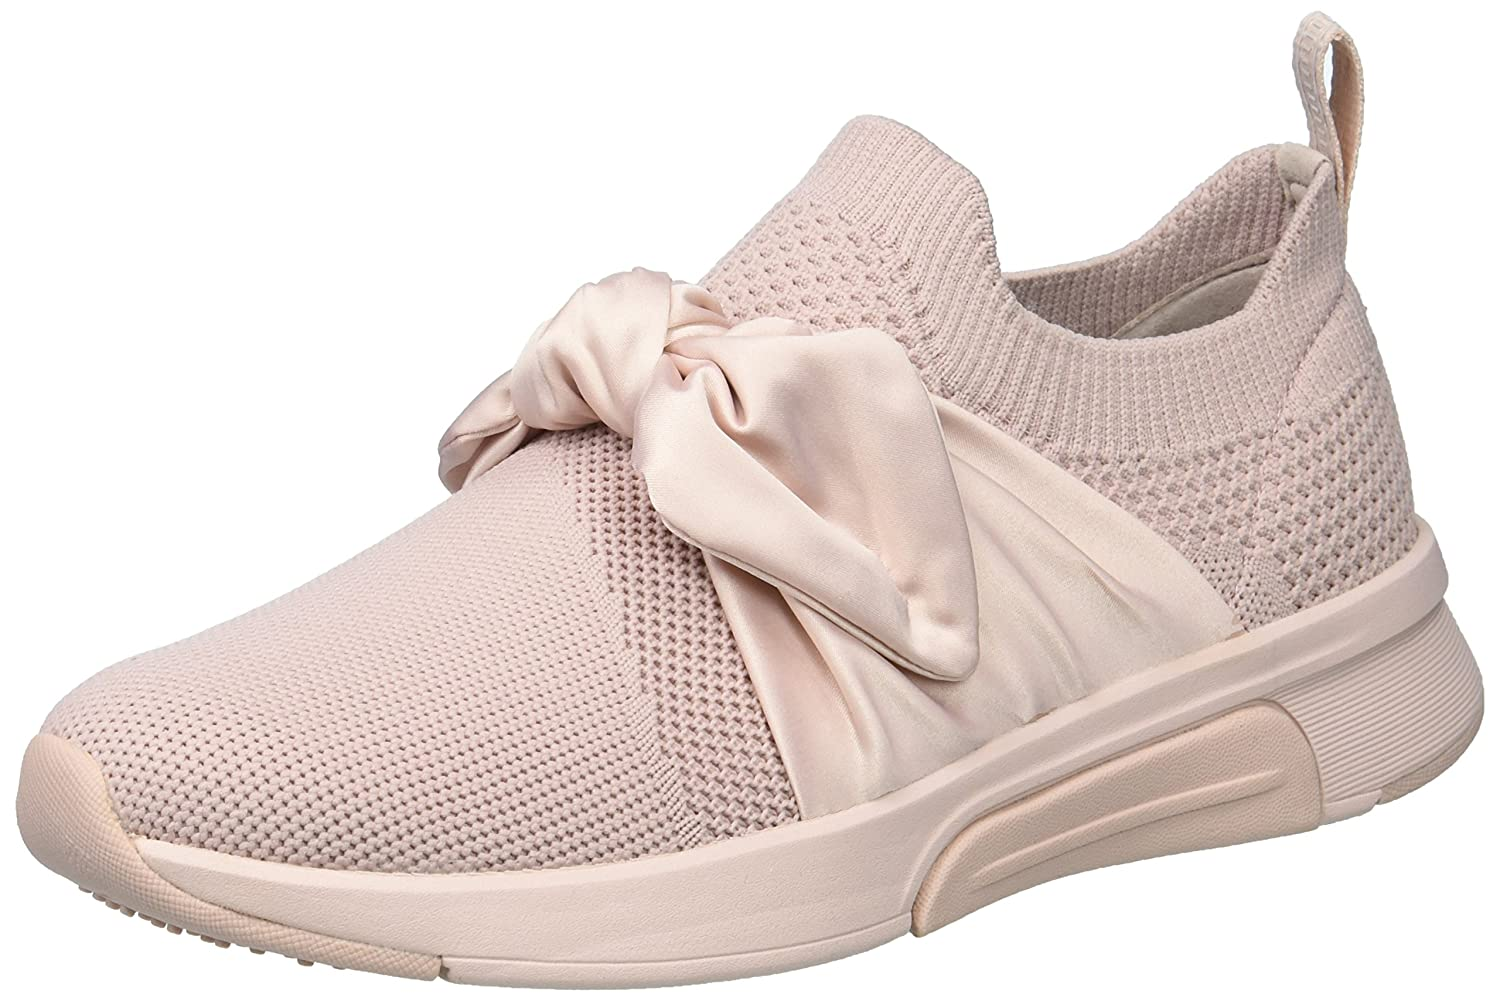 Mark Nason Los Angeles Women's Debbie Sneaker B077TFXRRN 7 B(M) US|Pink